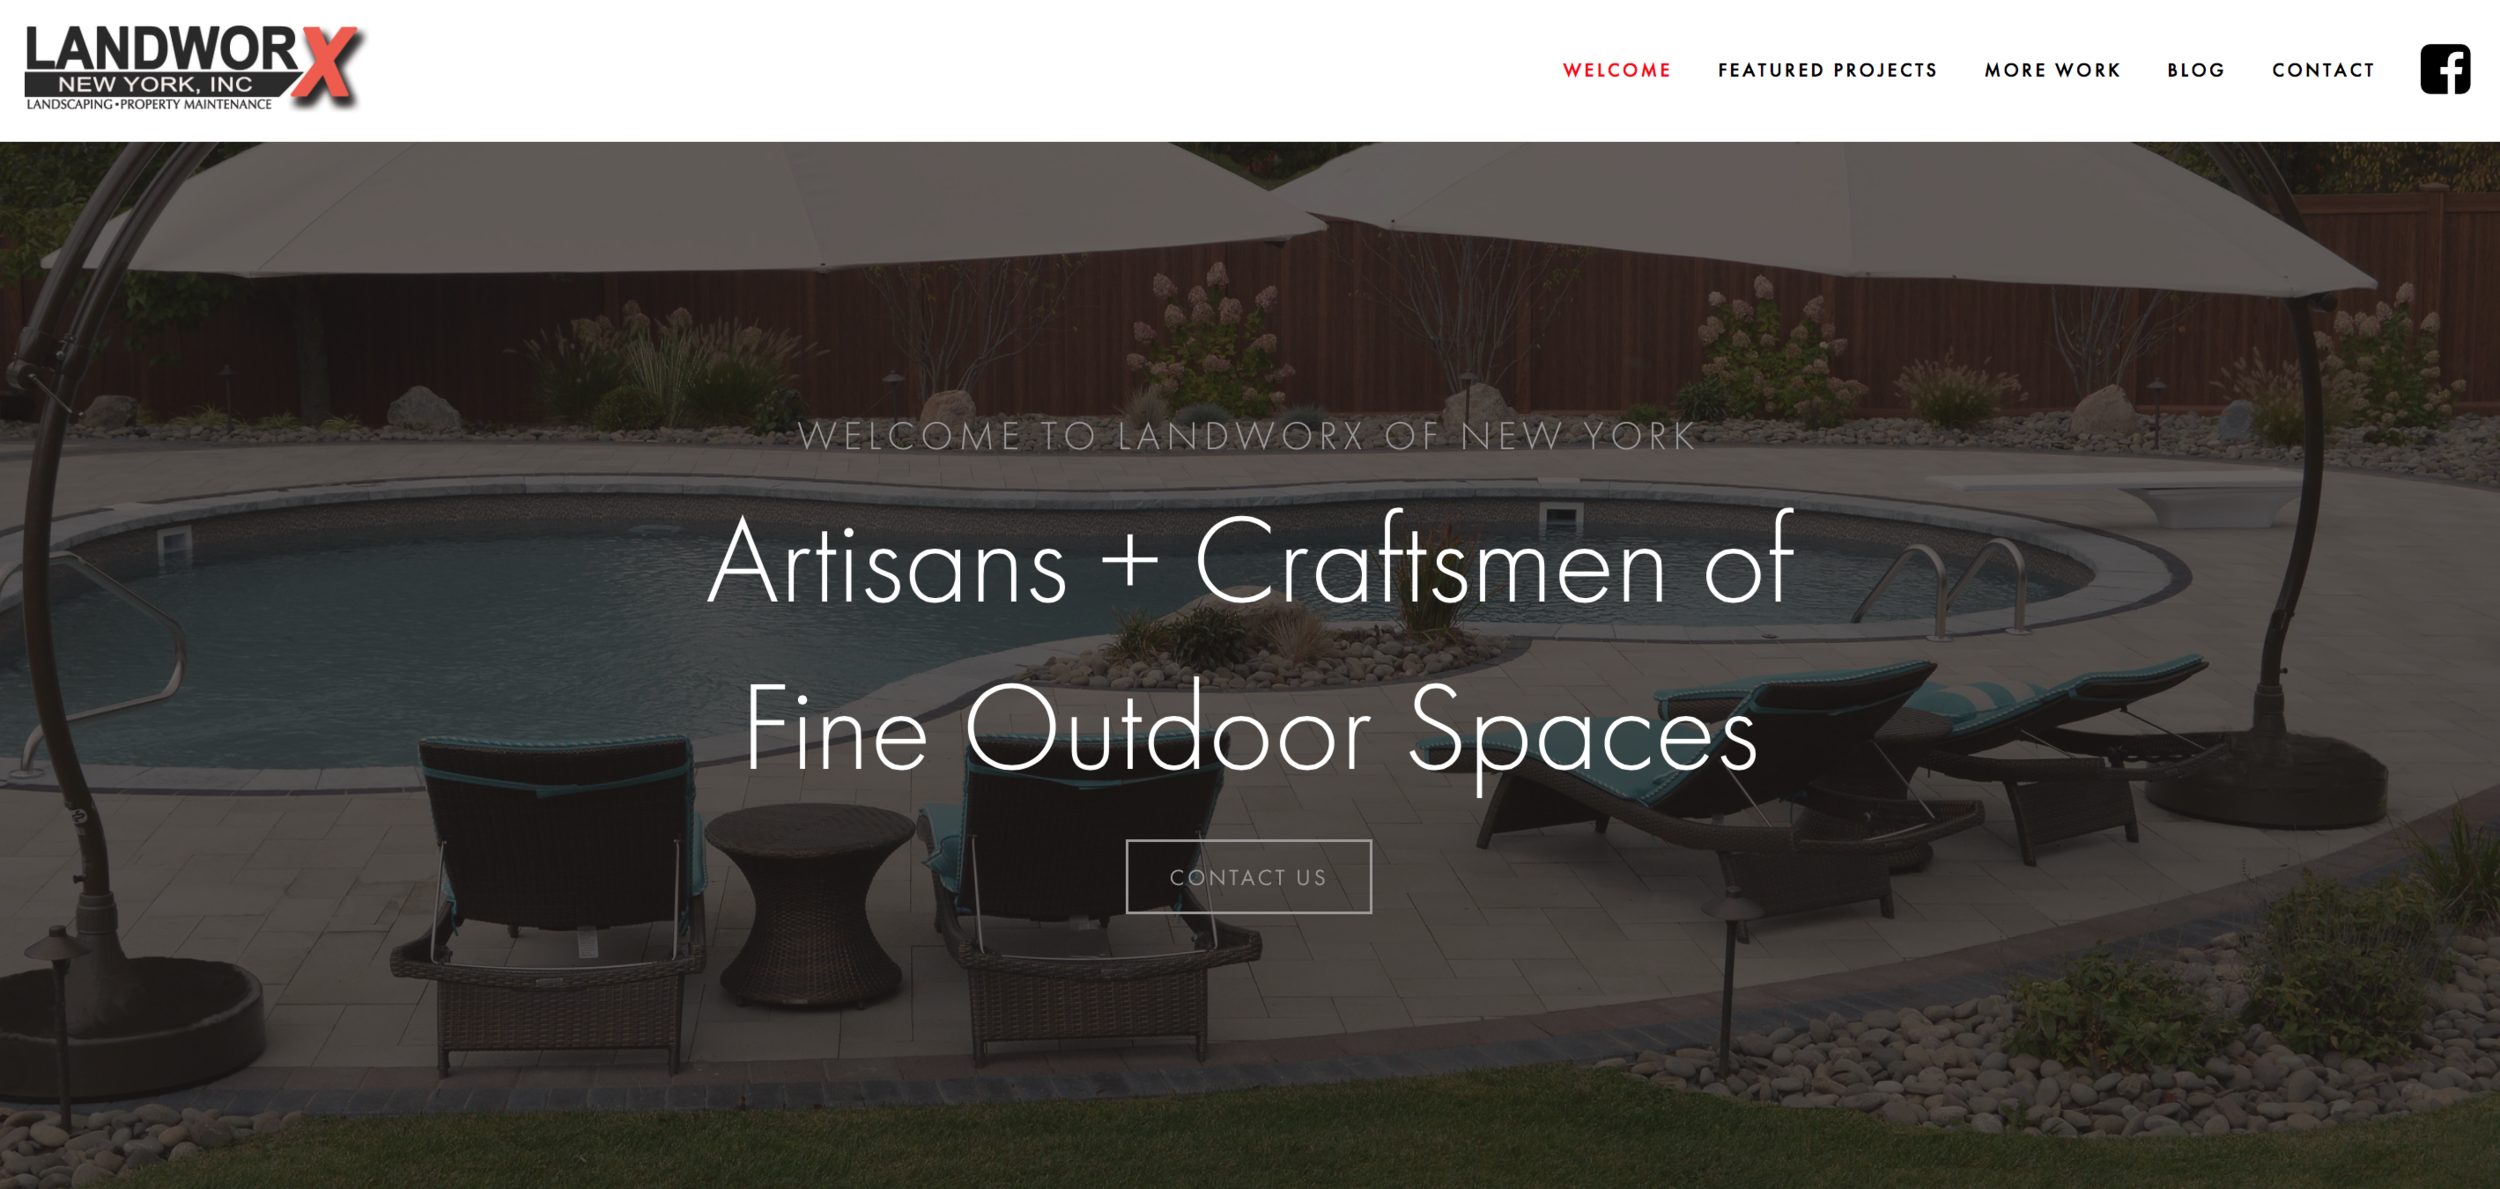 The Landworx of NY Blog helps homeowners in Orange County, NY and the Hudson Valley plan and live better in their outdoor spaces.